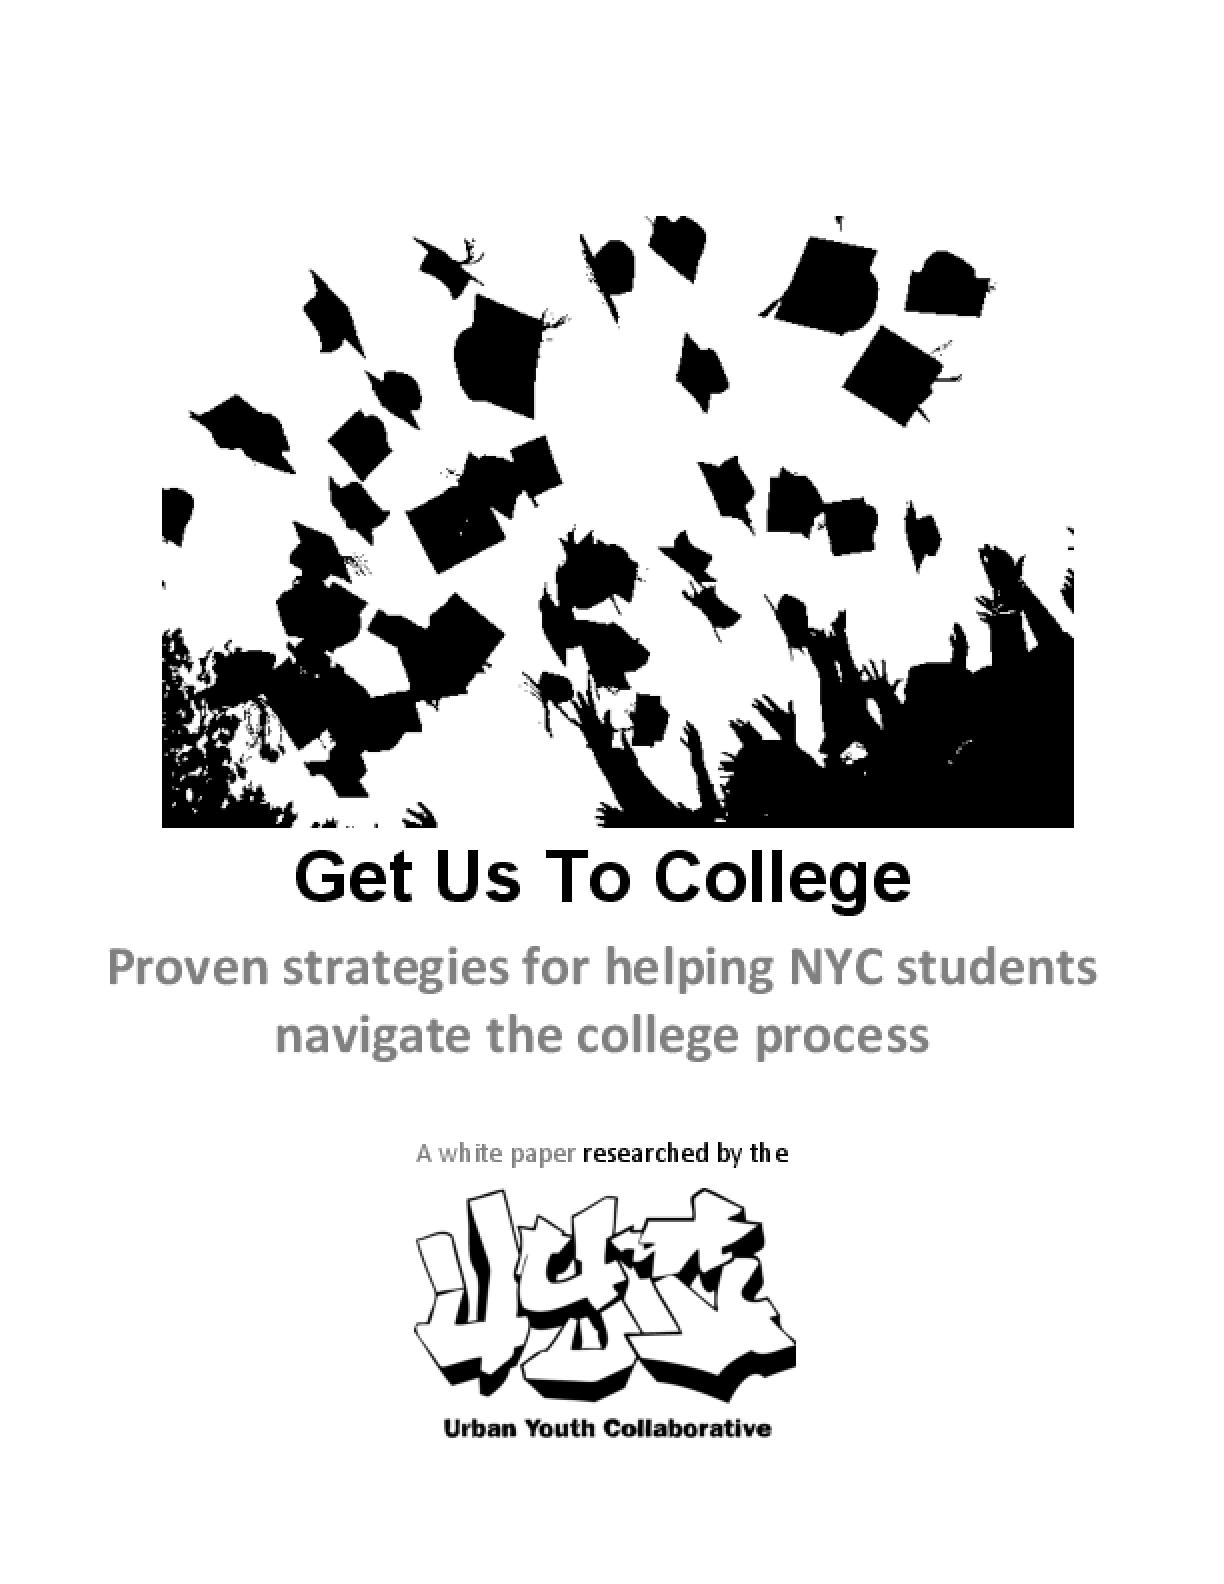 Get Us To College: Proven Strategies for Helping NYC